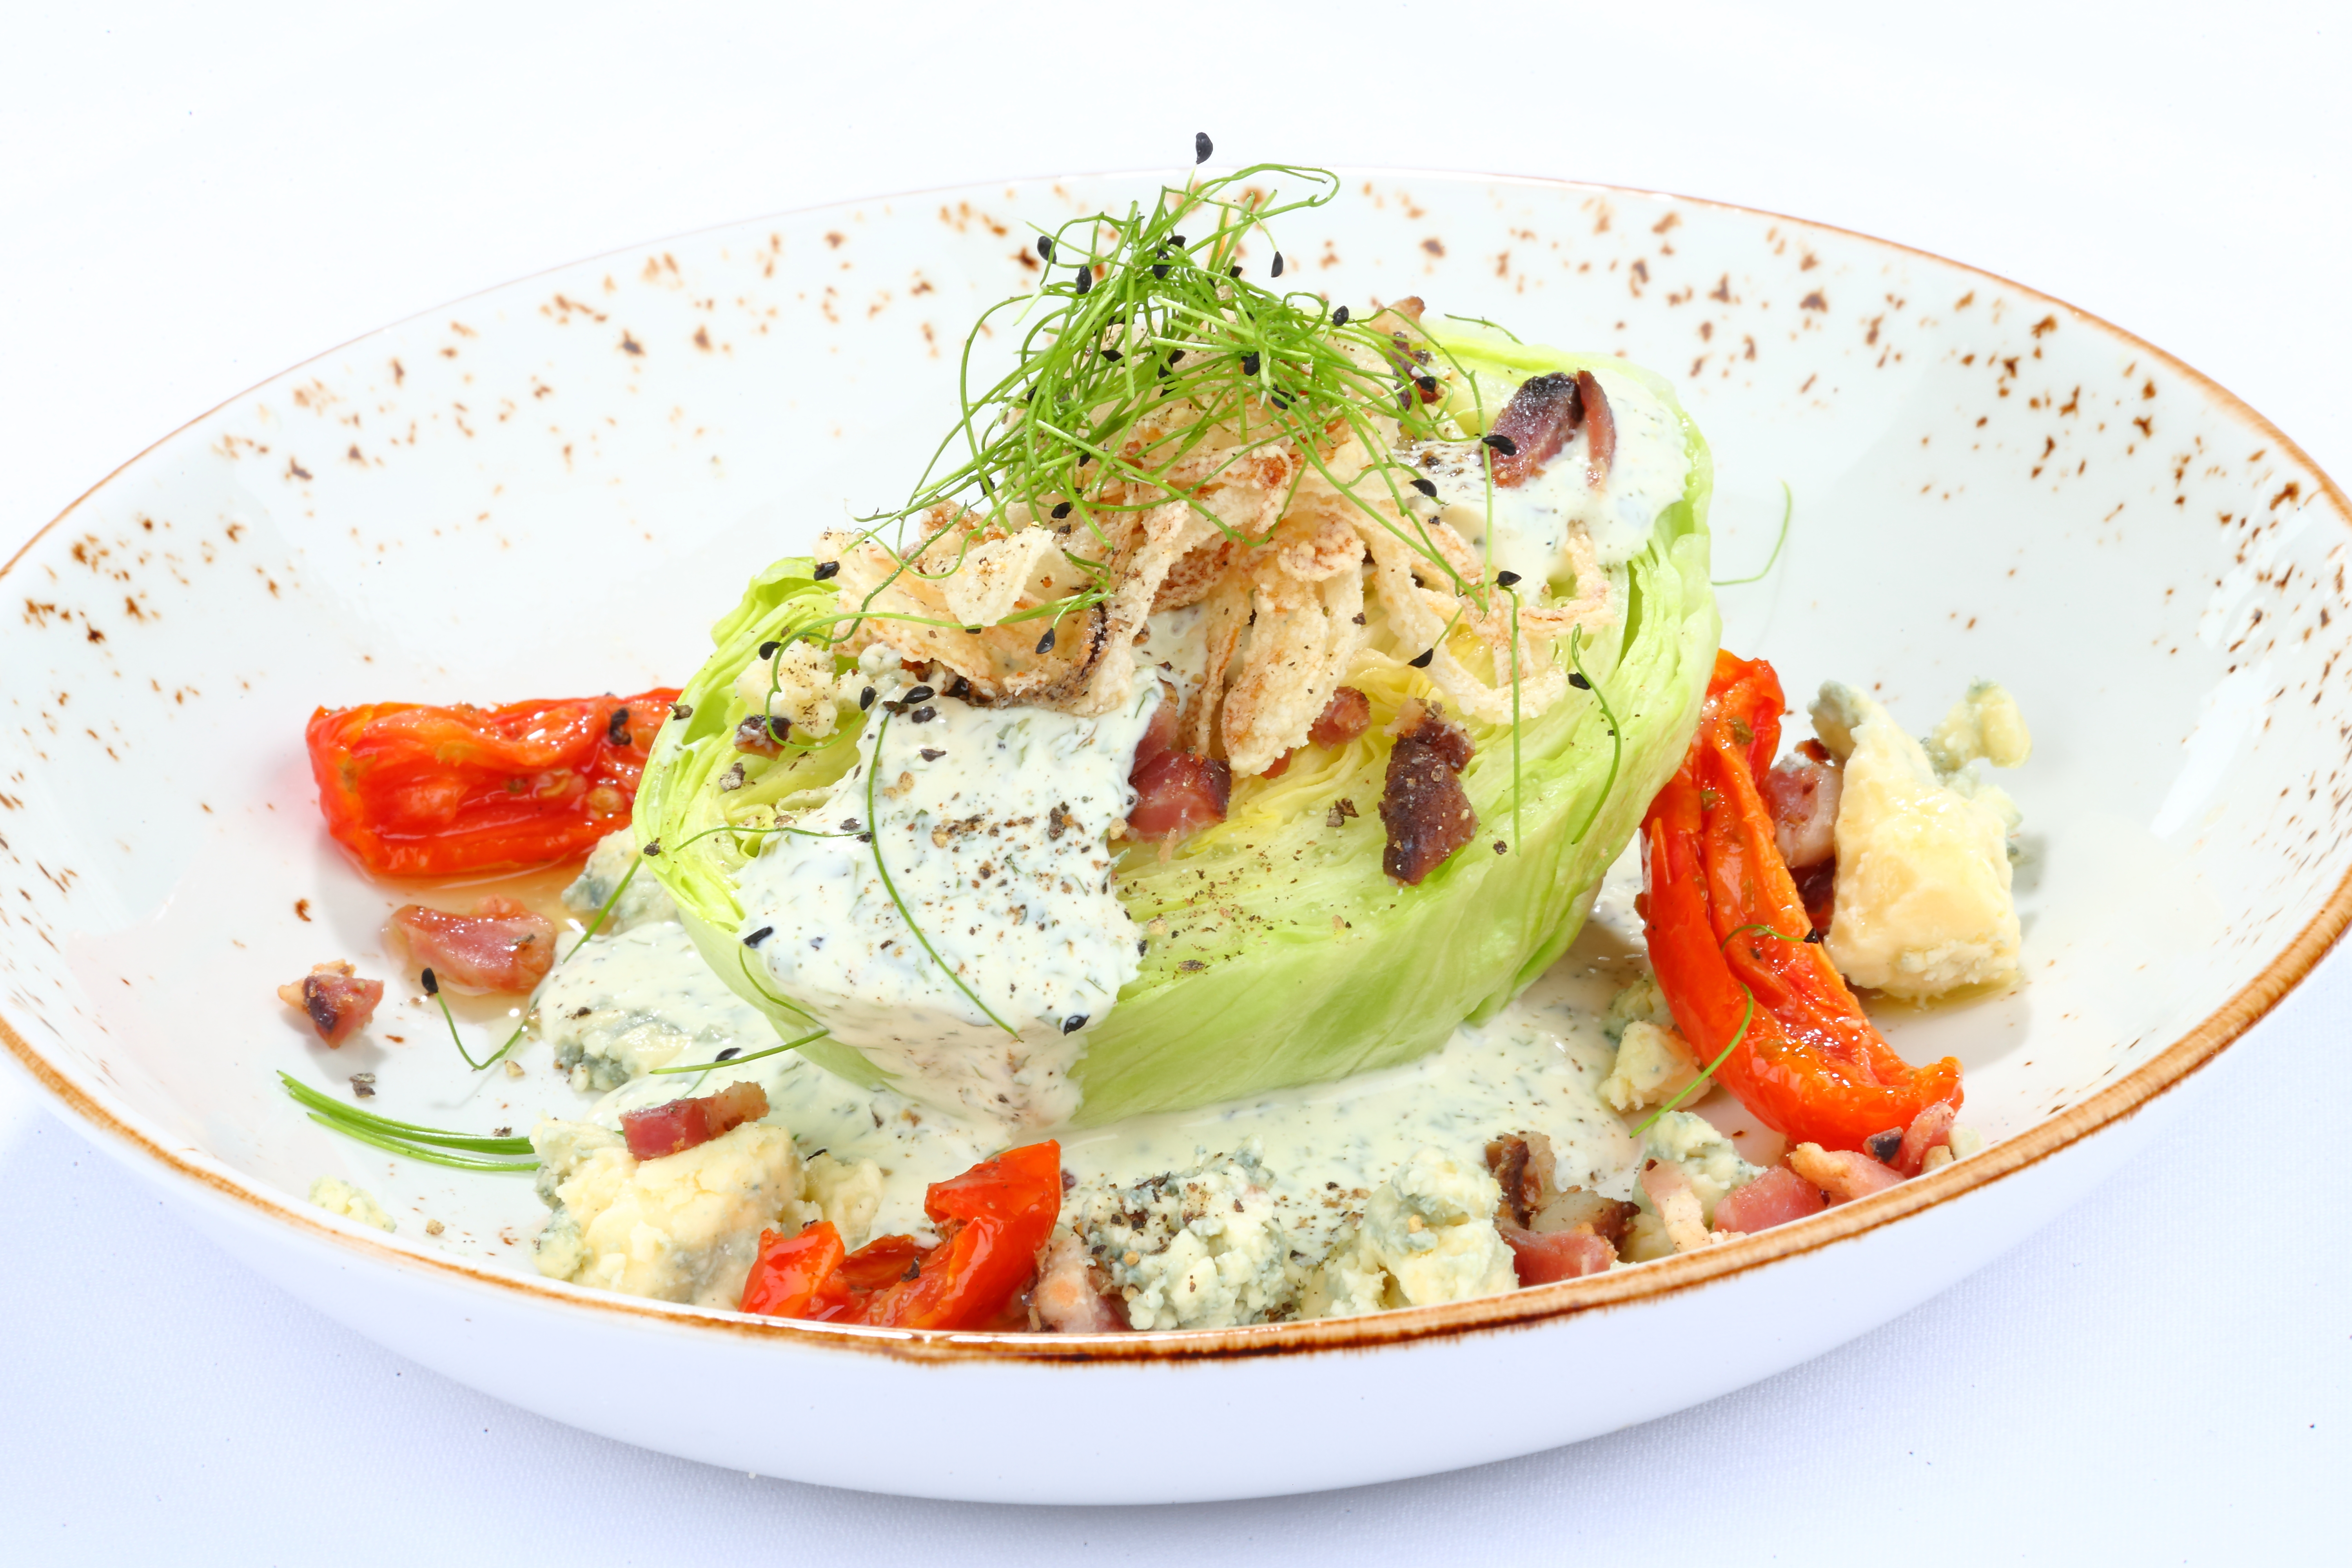 Half Lettuce Head Salad with Blue Cheese Dressing and Bacon